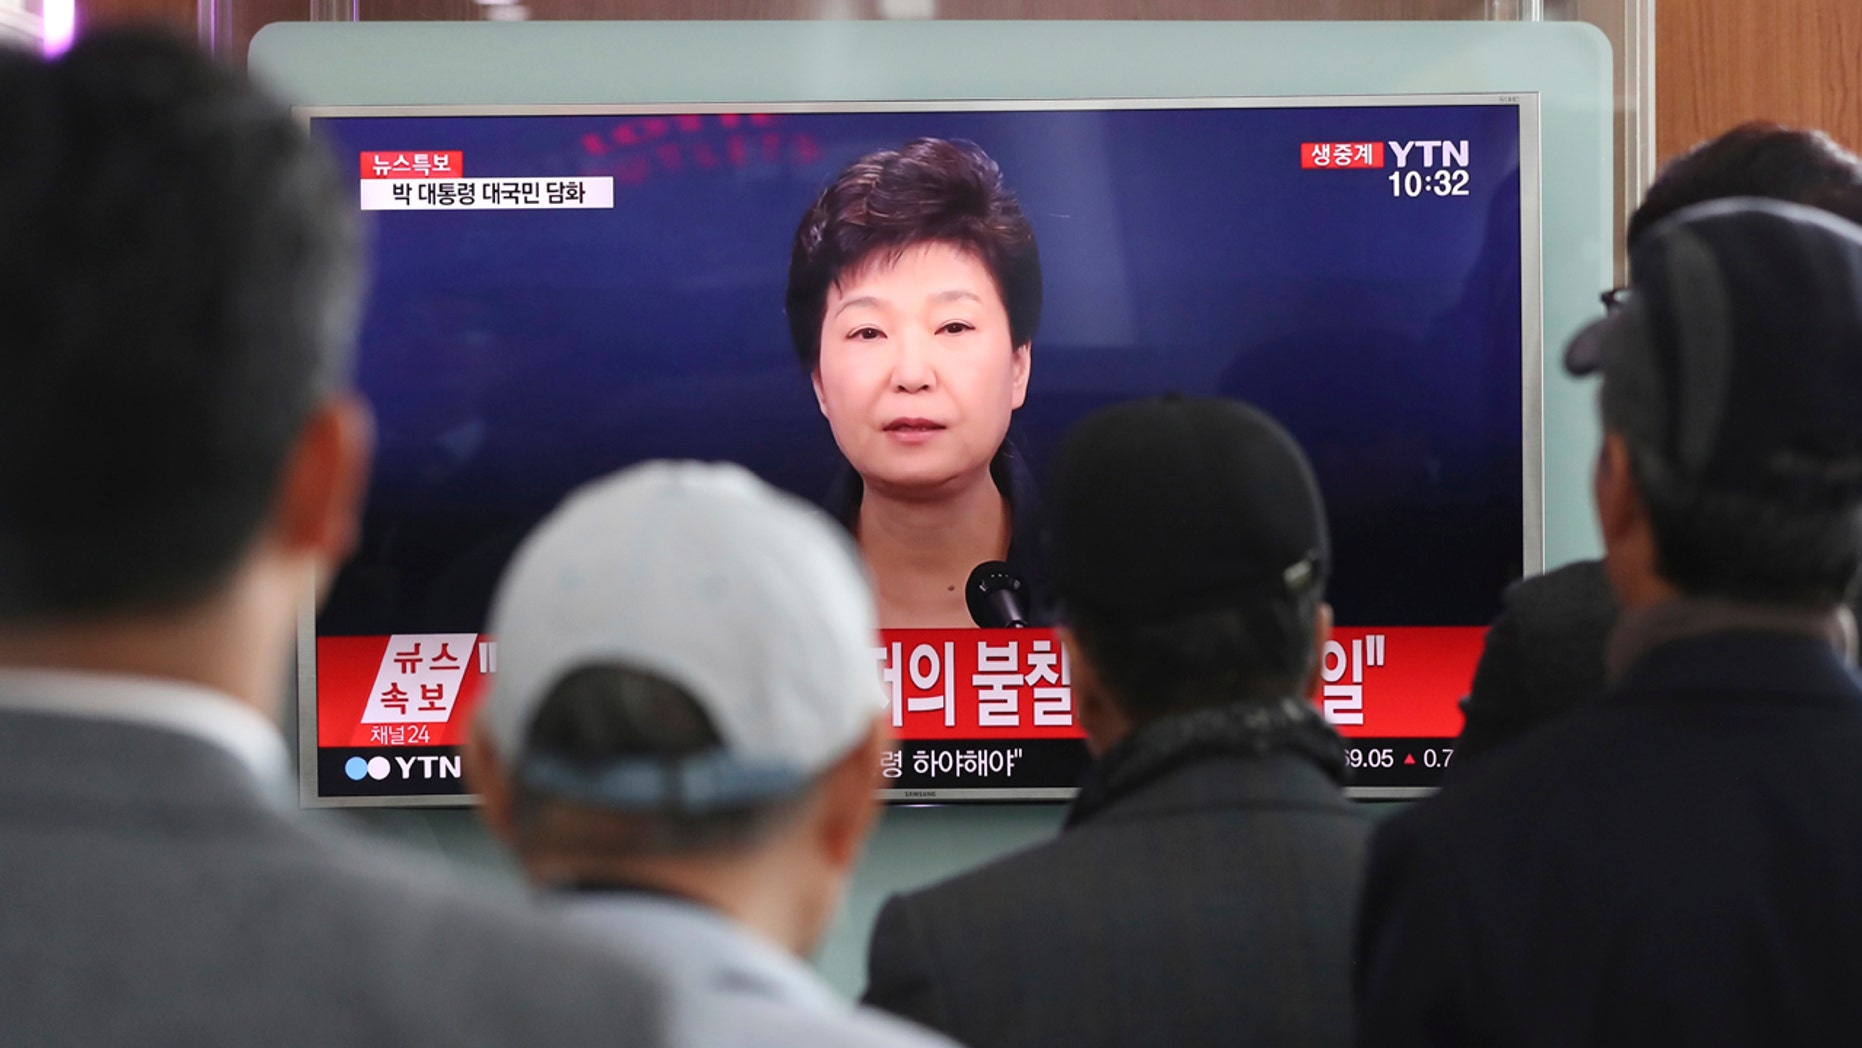 Nov. 4, 2016: People watch a TV screen showing the live broadcast of South Korean President Park Geun-hye's address to the nation, at the Seoul Railway Station in Seoul, South Korea.